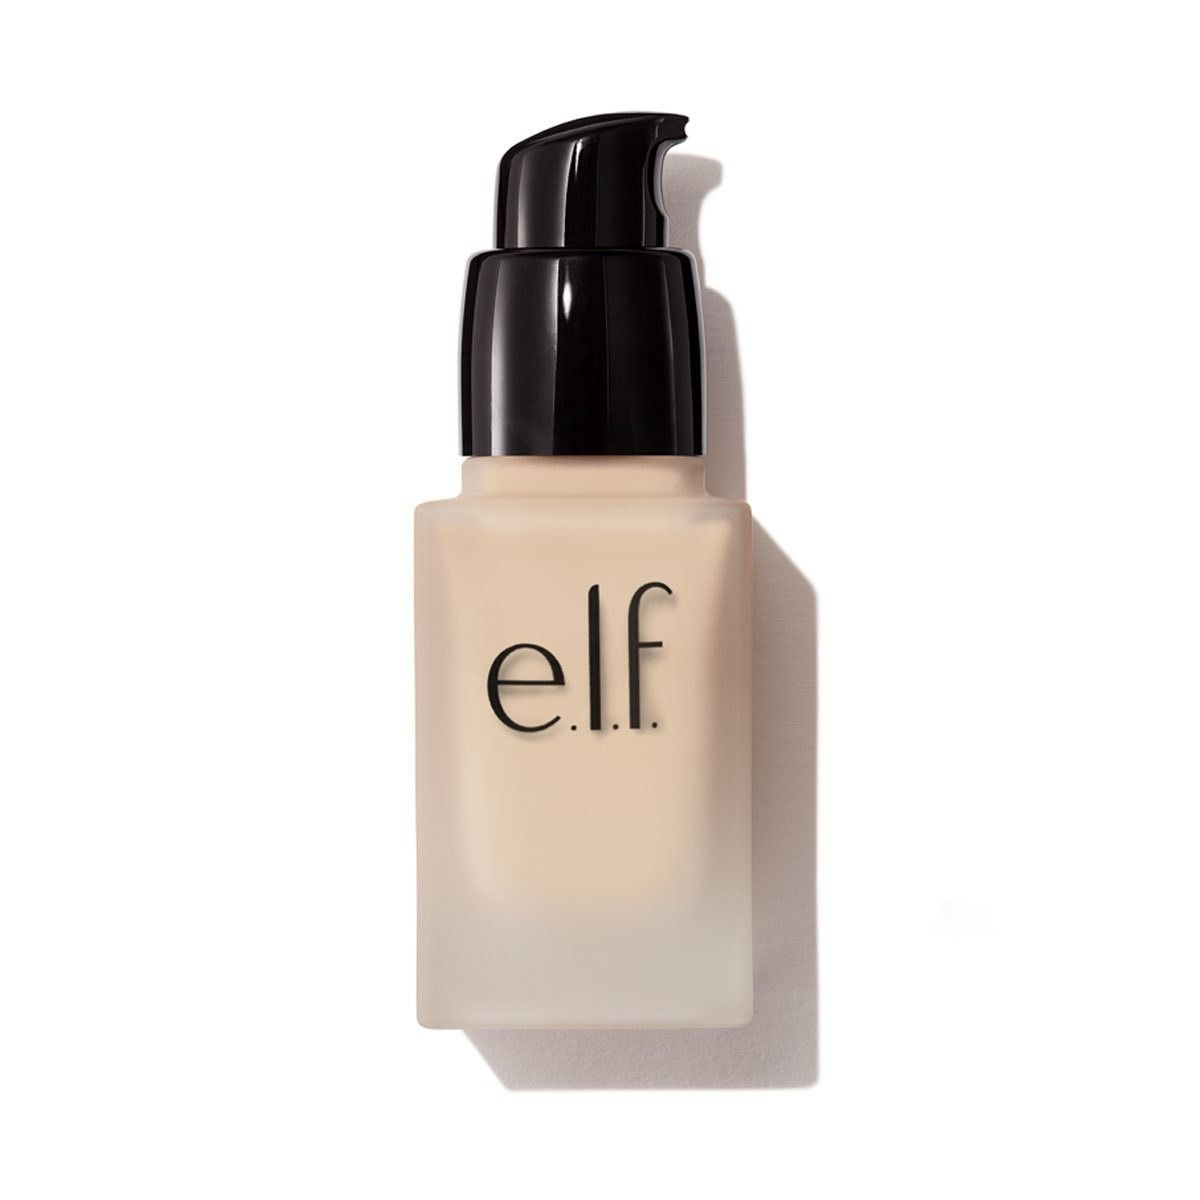 e.l.f. Cosmetics Flawless Finish Foundation